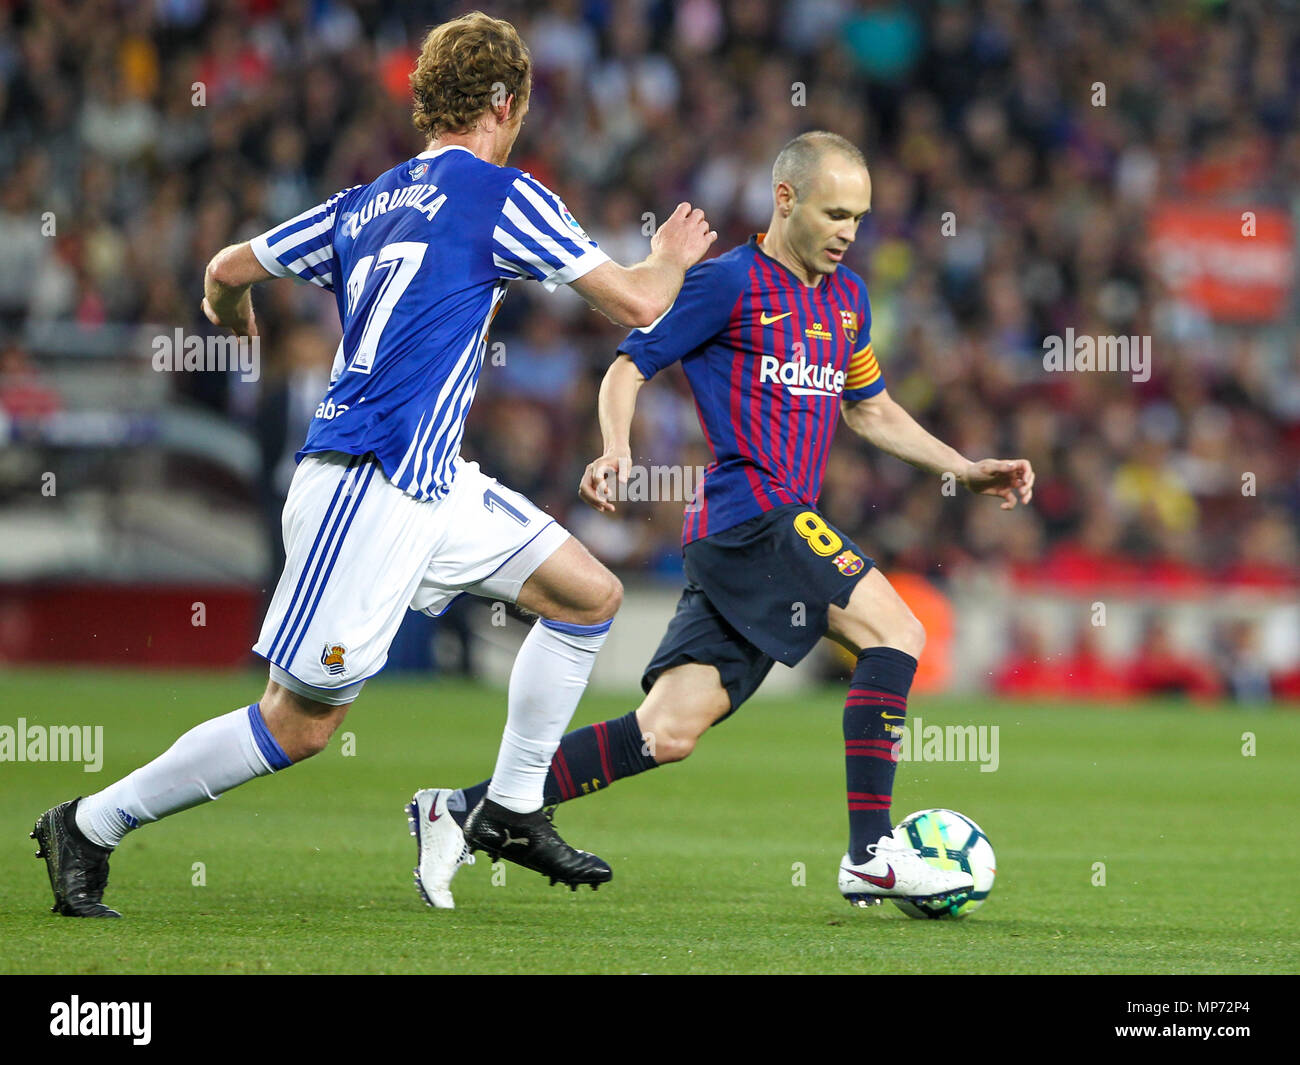 Barcelona, 20th May:  Andres Iniesta of FC Barcelona during the 2017/2018 LaLiga Santander Round 38 game between FC Barcelona and Real Sociedad at Camp Nou on May 20, 2018 in Barcelona, Spain. - Stock Image